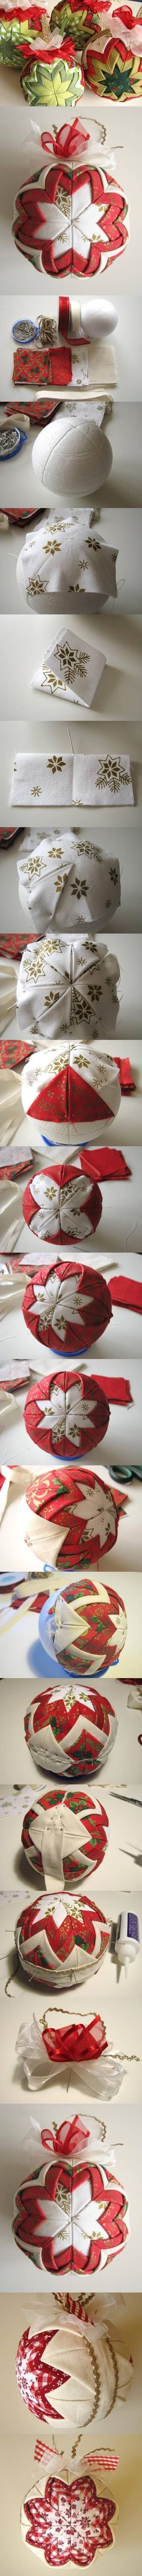 DIY Patchwork For Christmas Pictures, Photos, and Images for Facebook, Tumblr, Pinterest, and Twitter